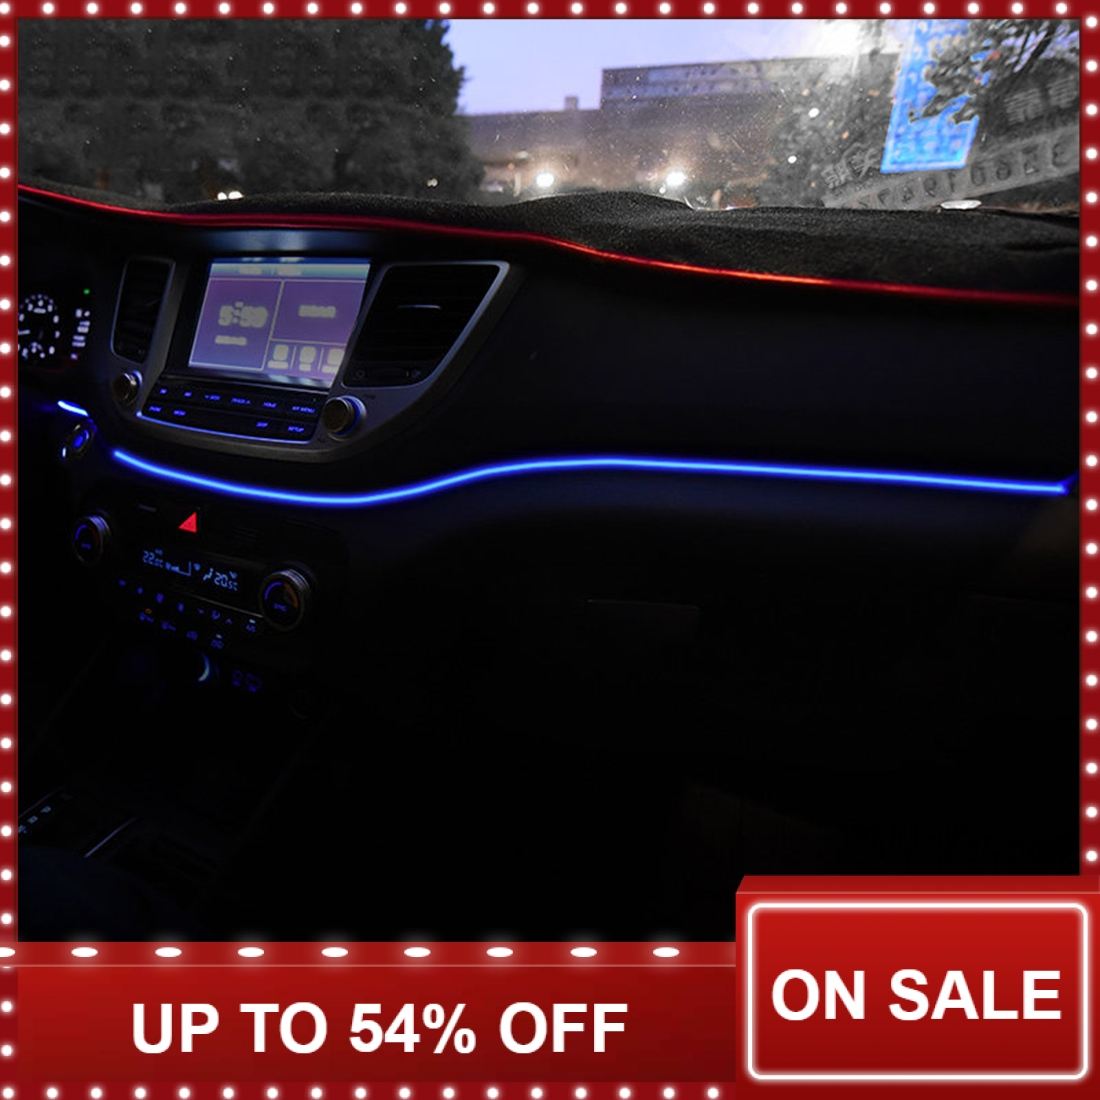 Instrument Panel Trim Atmosphere Light For Hyundai Tucson 2015 2016 Interior LED Blue Dashboard Frame Light For Tucson 2017 2018-in Interior Mouldings from Automobiles & Motorcycles